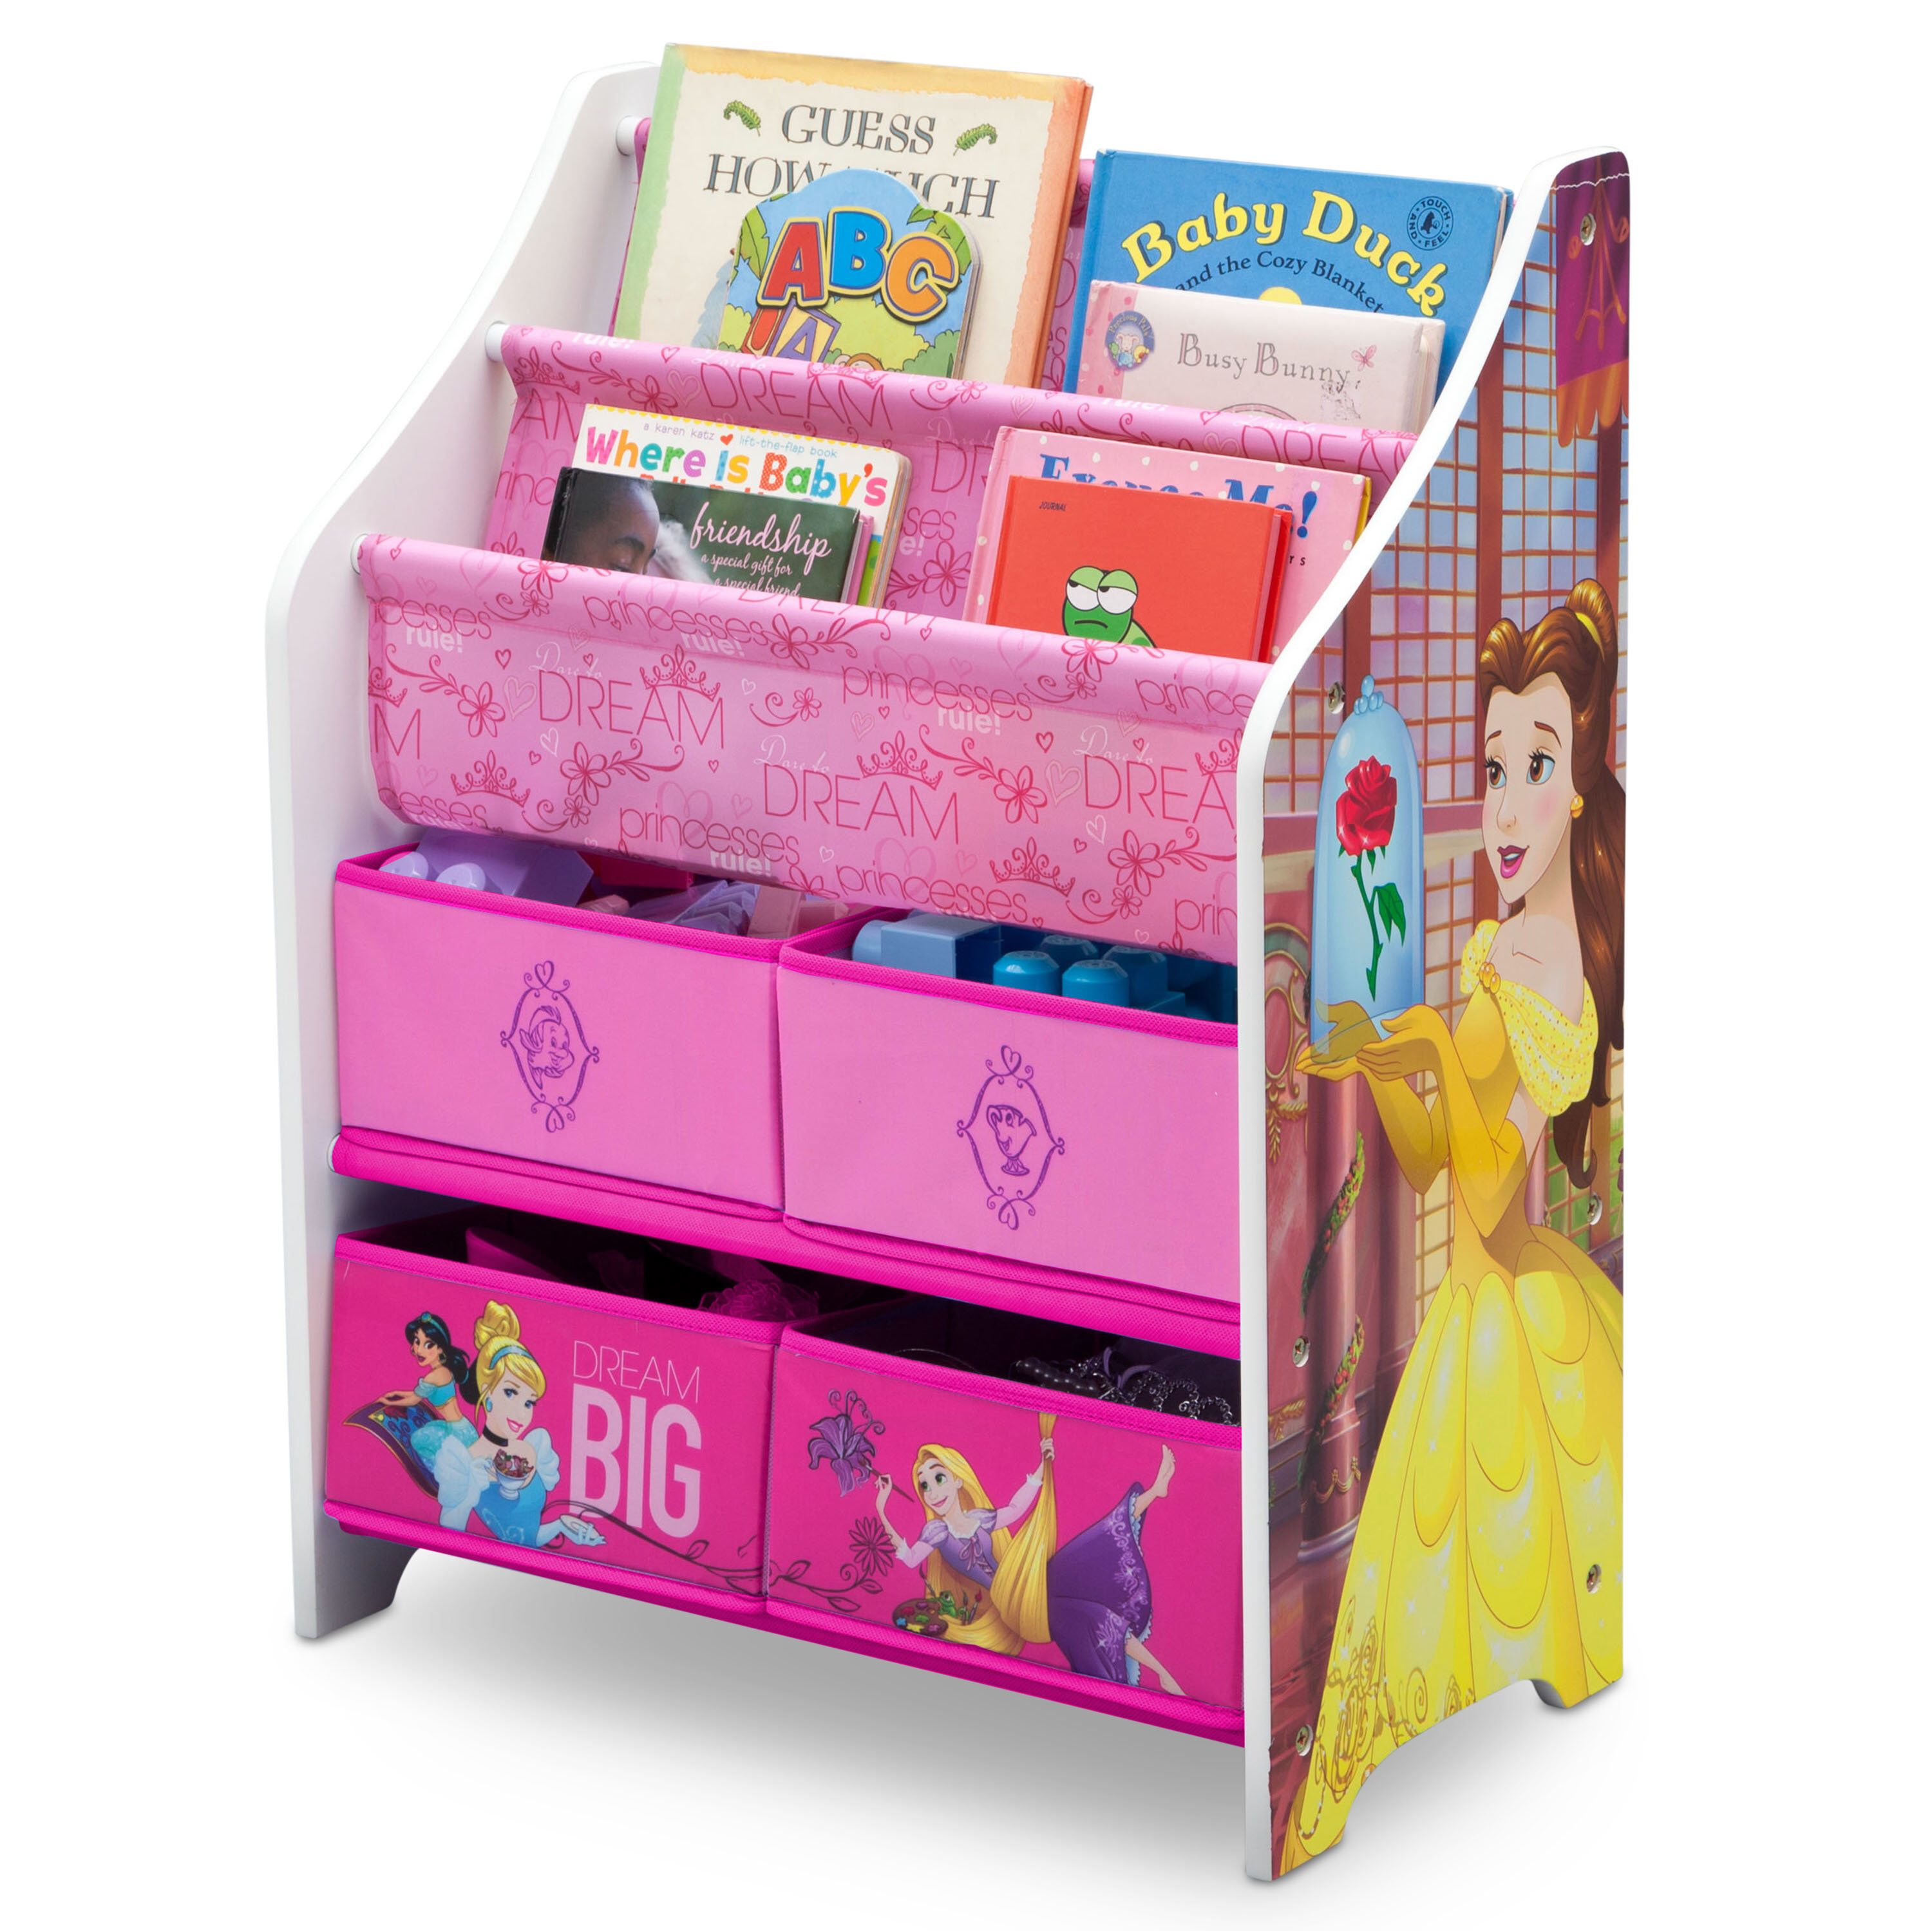 Disney Princess Book And Toy Organizer Toy Organization Disney Princess Books Disney Princess Toys